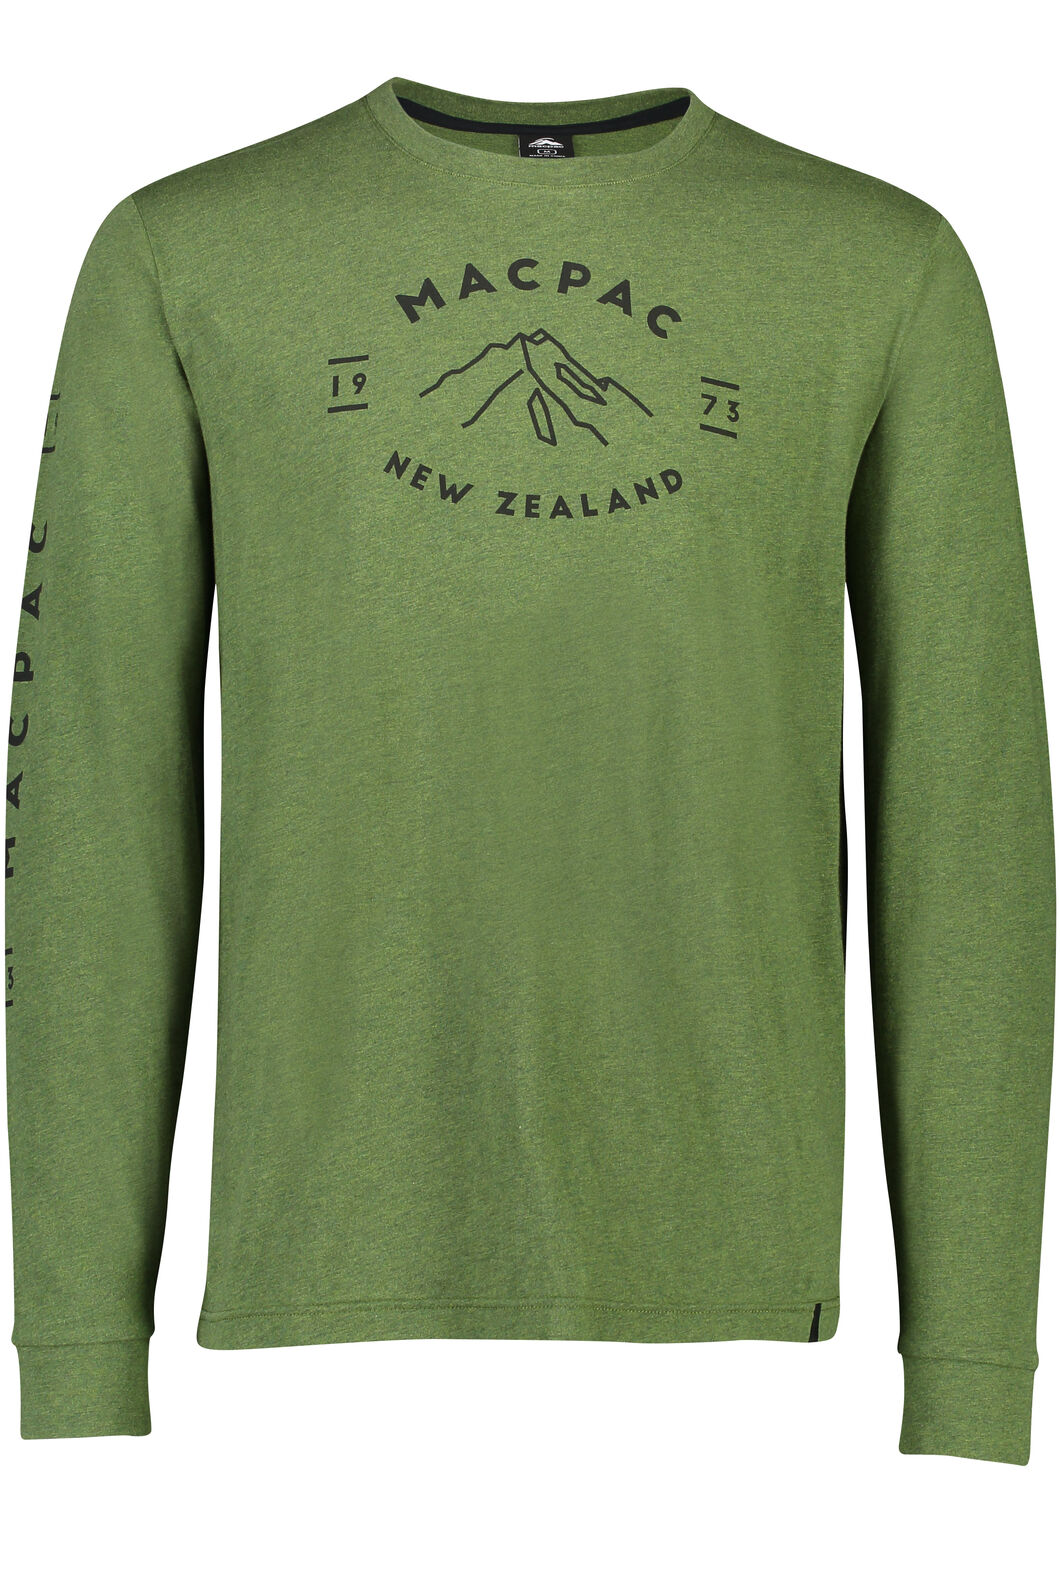 Macpac Long Sleeve Tee - Men's, Rifle Green, hi-res